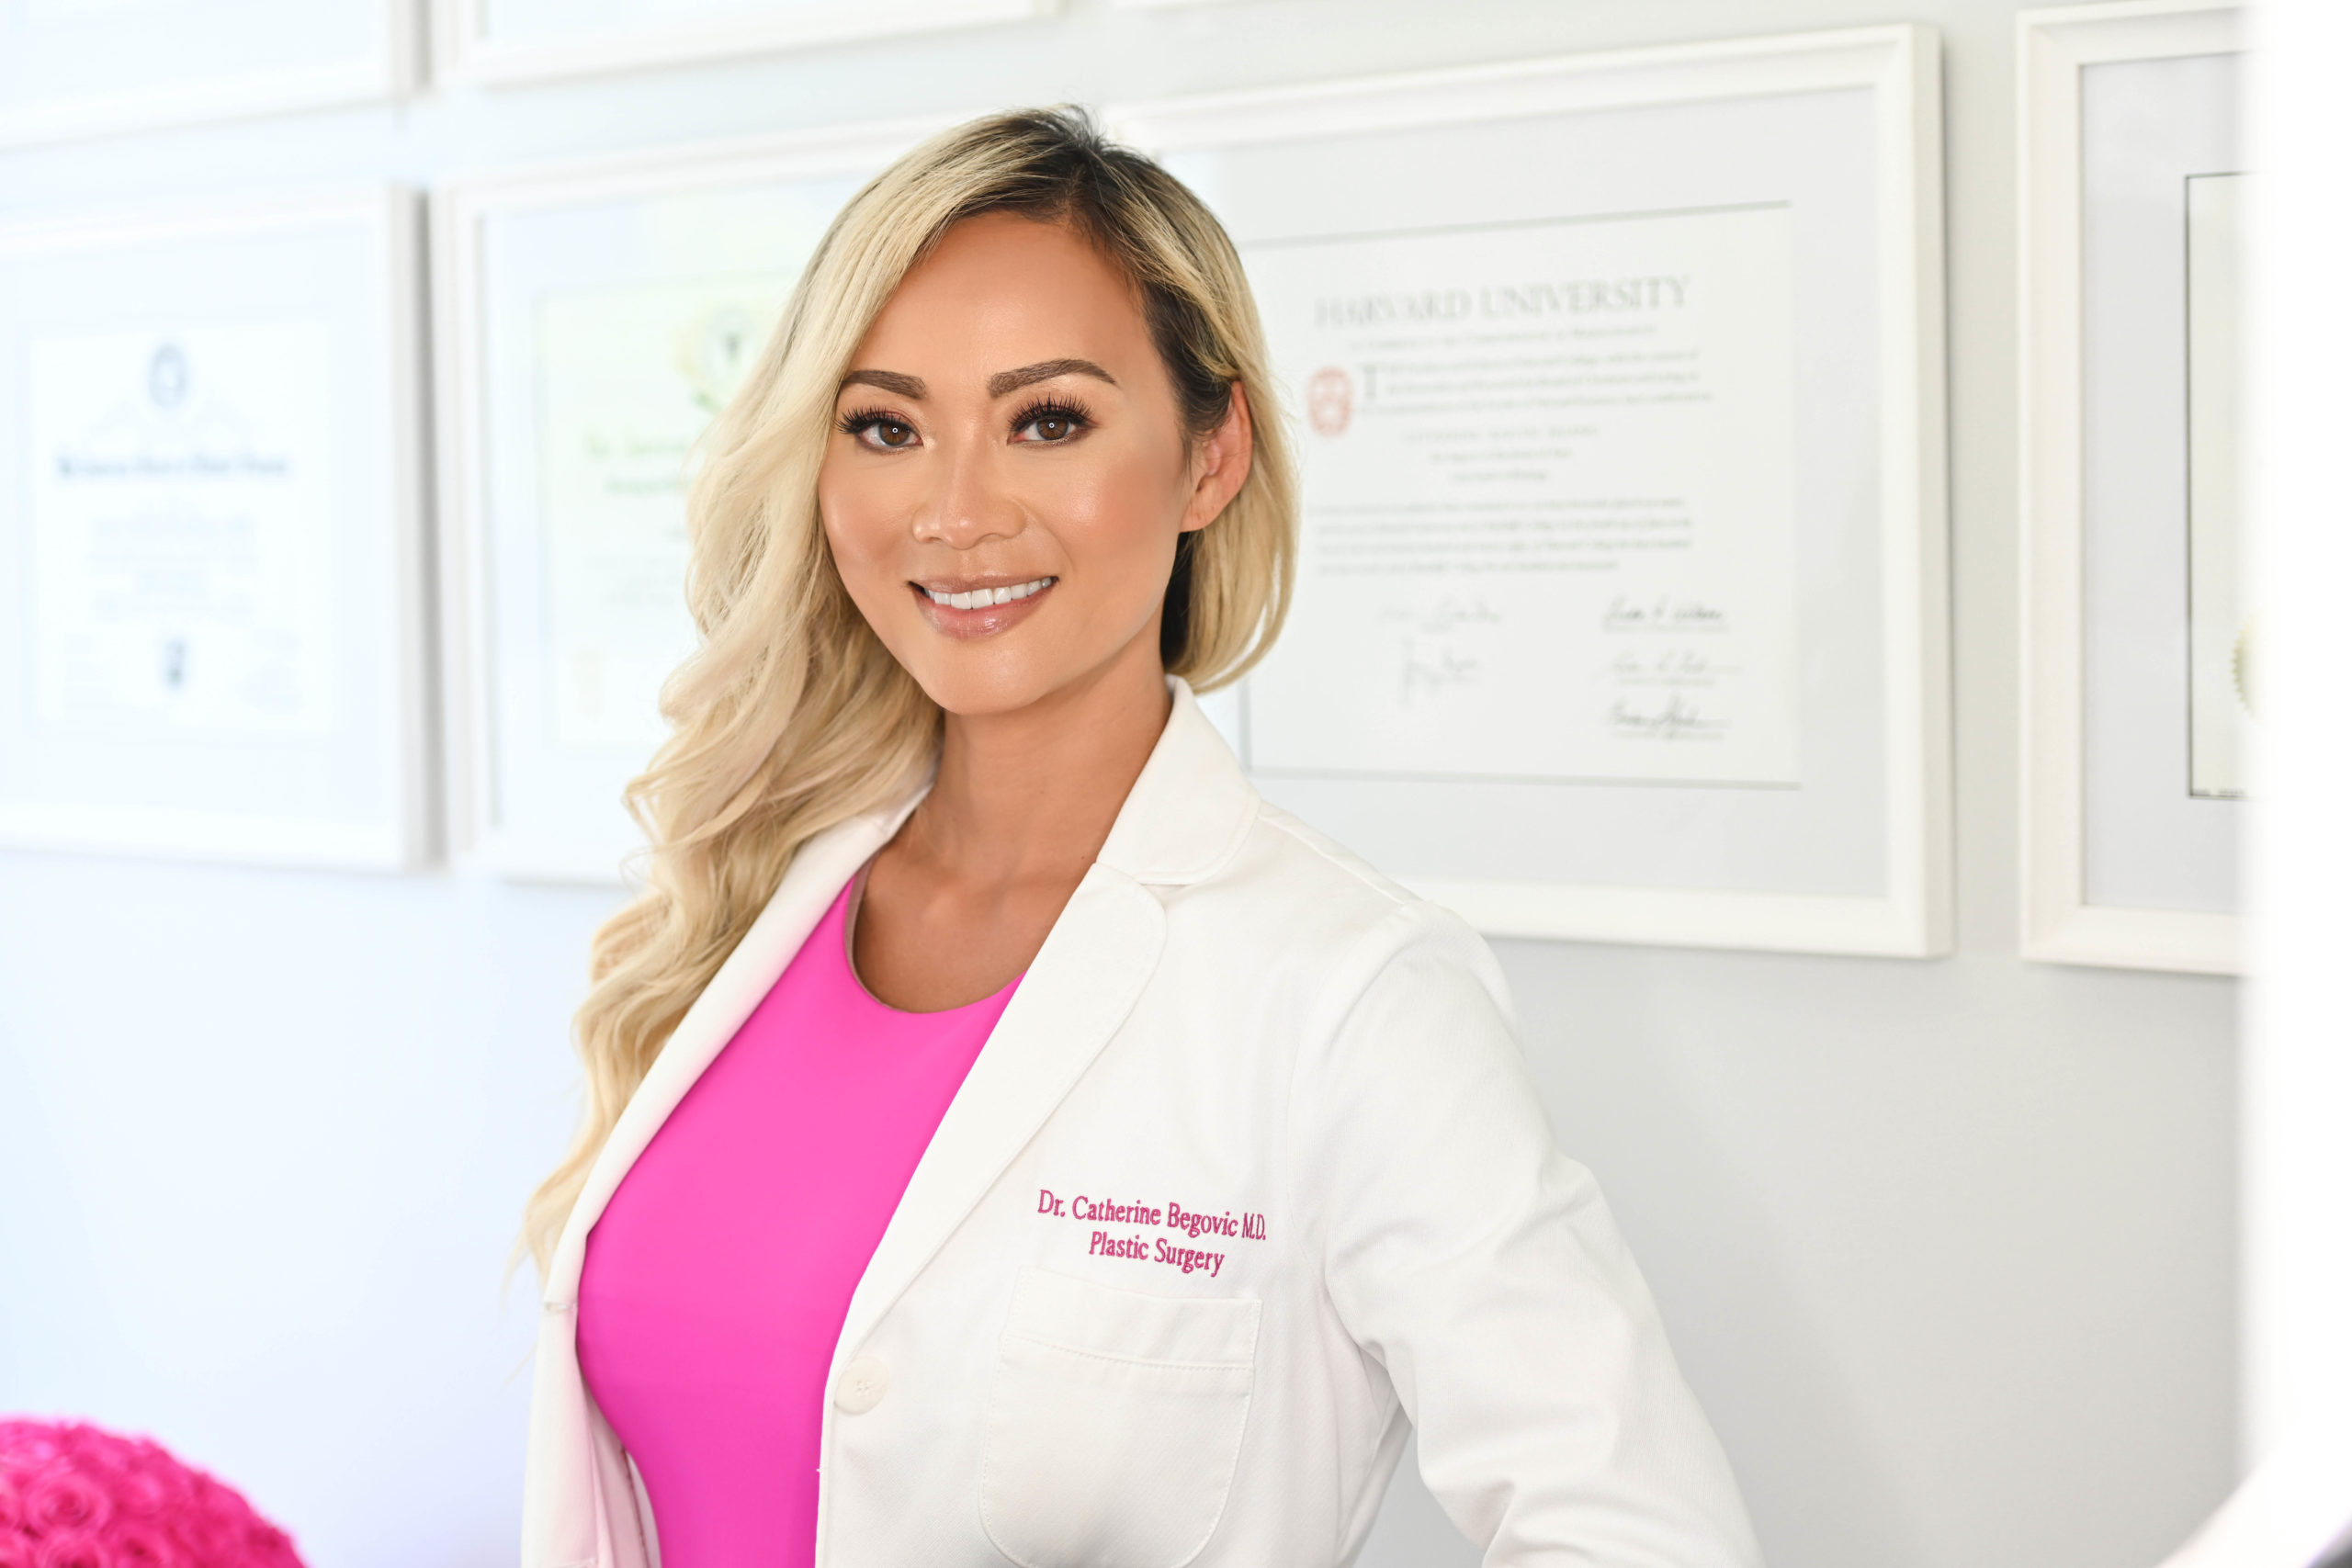 A Day In Life Of A Plastic Surgeon